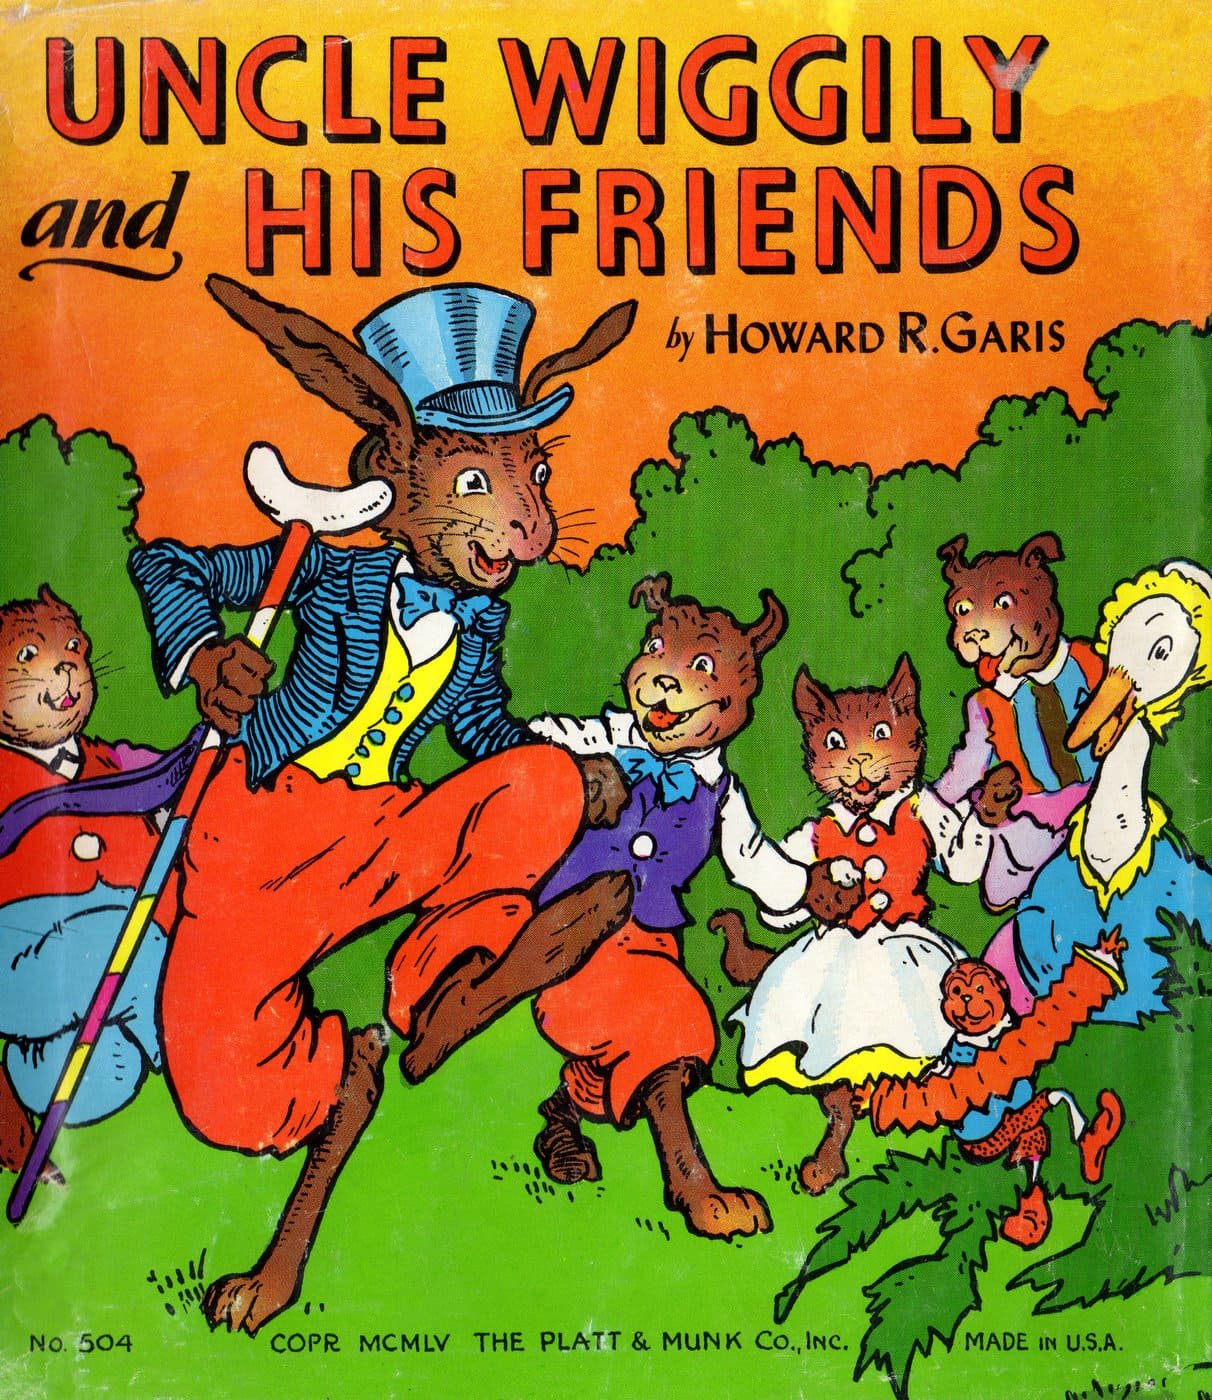 Vintage Uncle Wiggily and His Friends book cover (2)